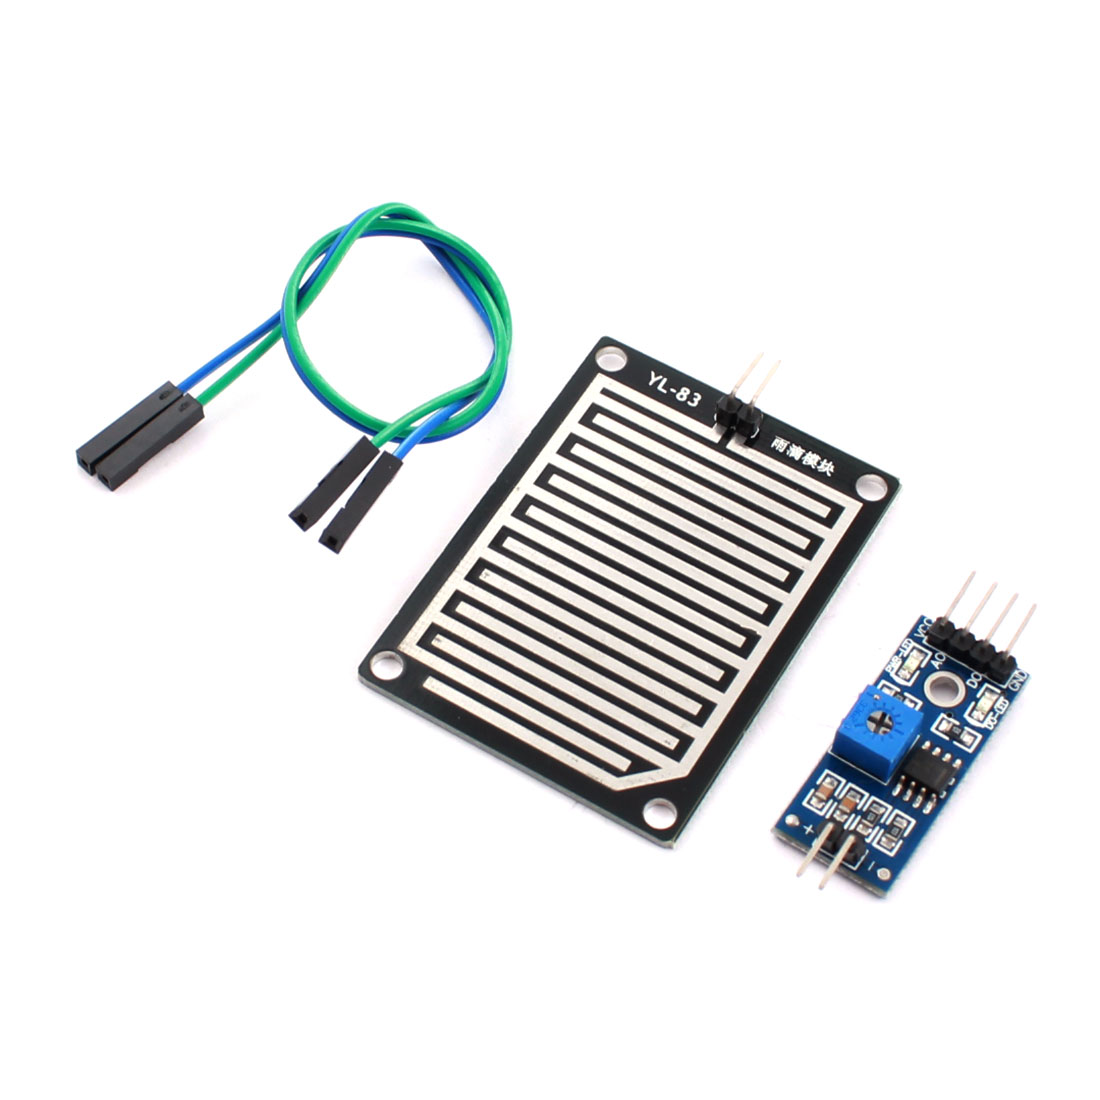 YL-83 DC 3.5-5V Rain Detection Moisture Sensor Weather Sensitivity PCB Circuit Module Black Blue w Jamper Wire